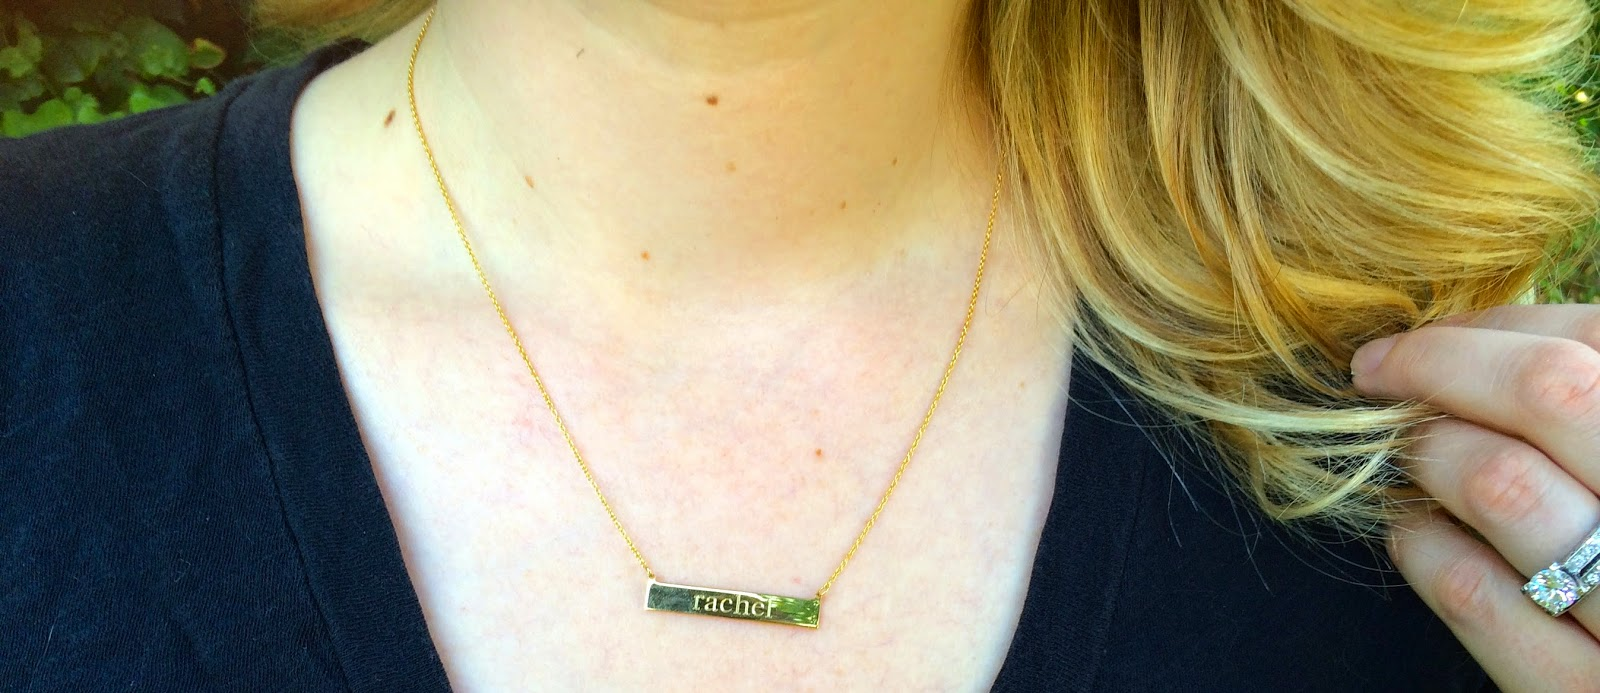 name-plate-necklace